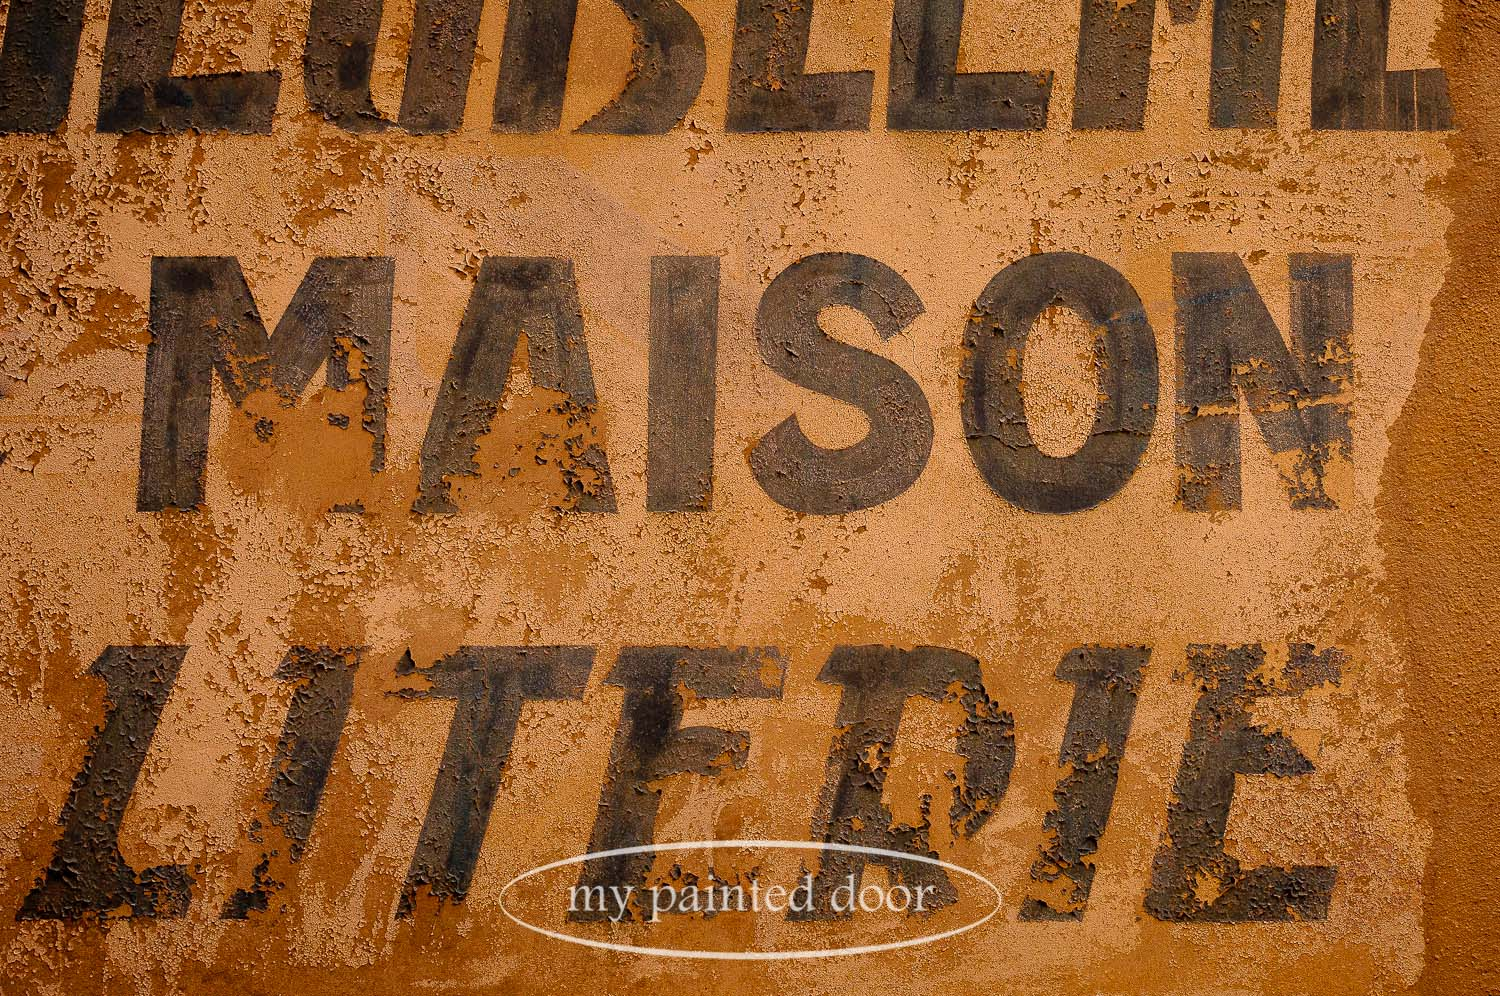 Old sign in France with chippy paint.